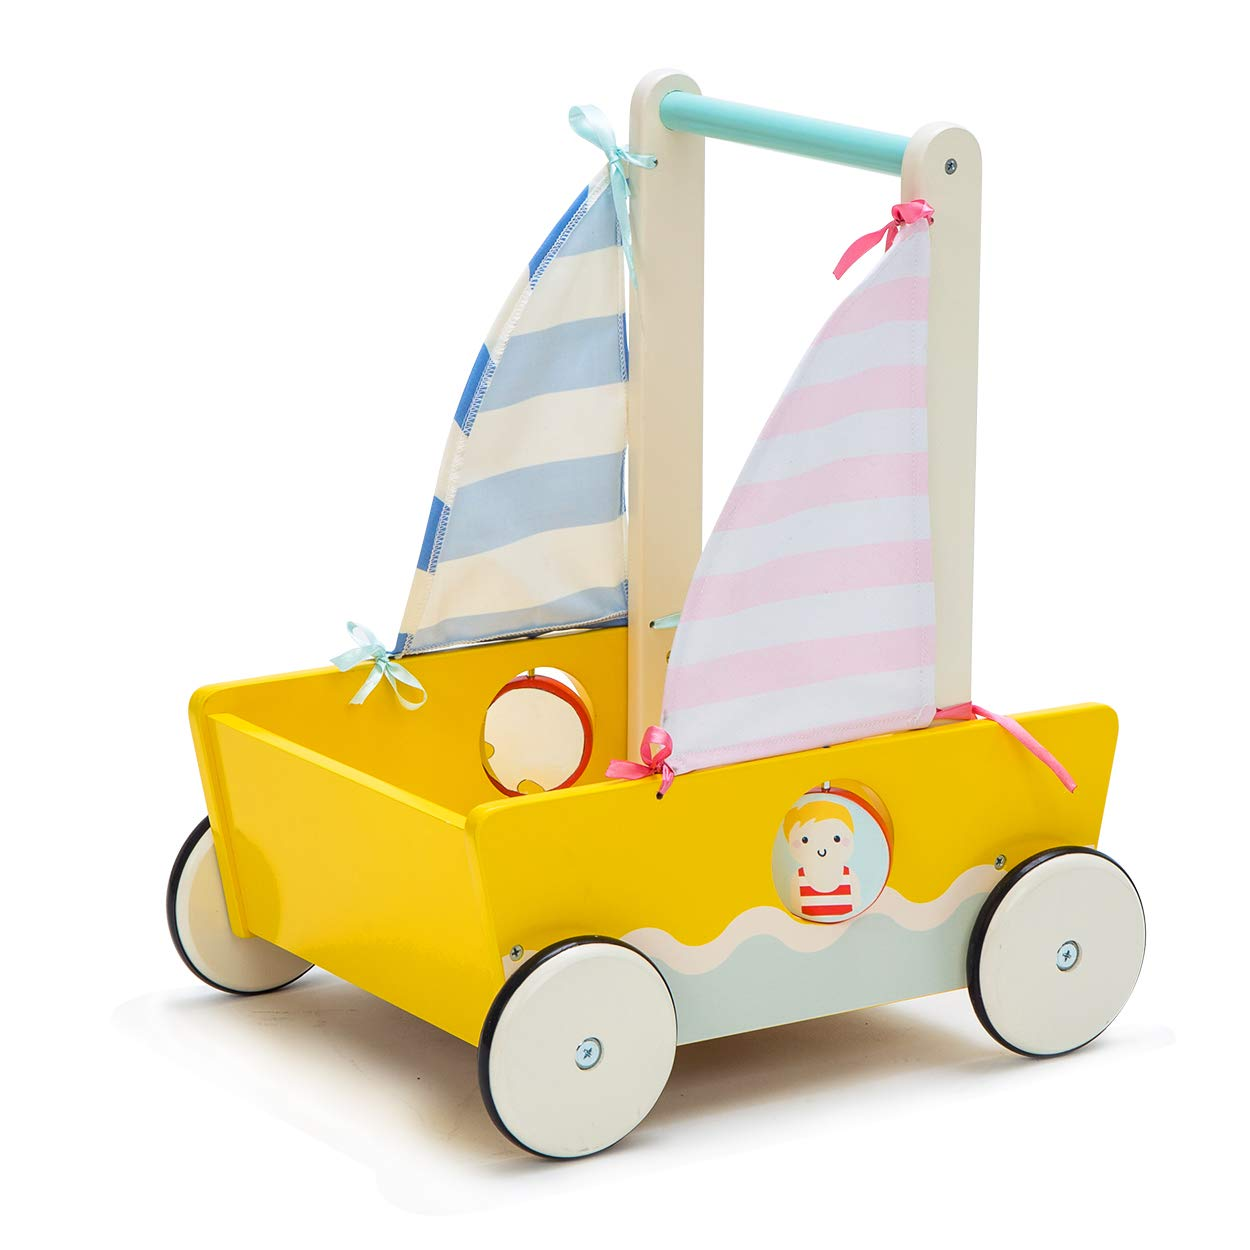 Hessie Baby Walker with Wheel, Boat Activity Push Toy, Toddler Wooden Learning Walking Toys for 1 / 2 / 3 Year Old